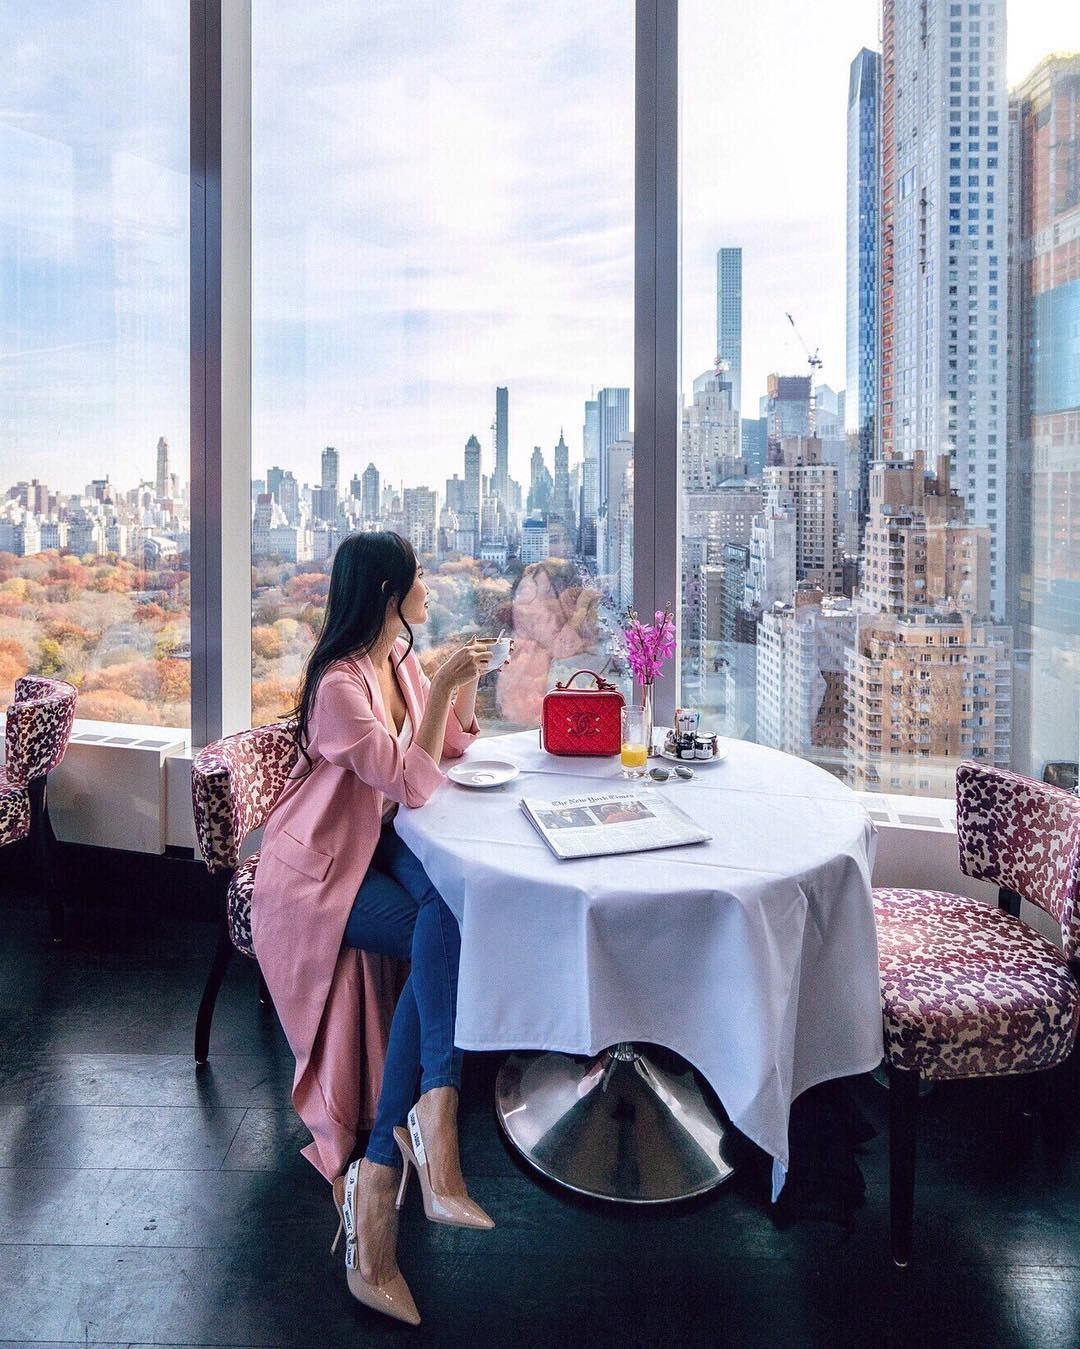 If You Didn T Gram It Were You Really There We All Love Photogenic Spots So Here Are The 16 Most In Restaurant New York New York Travel Guide New York Travel